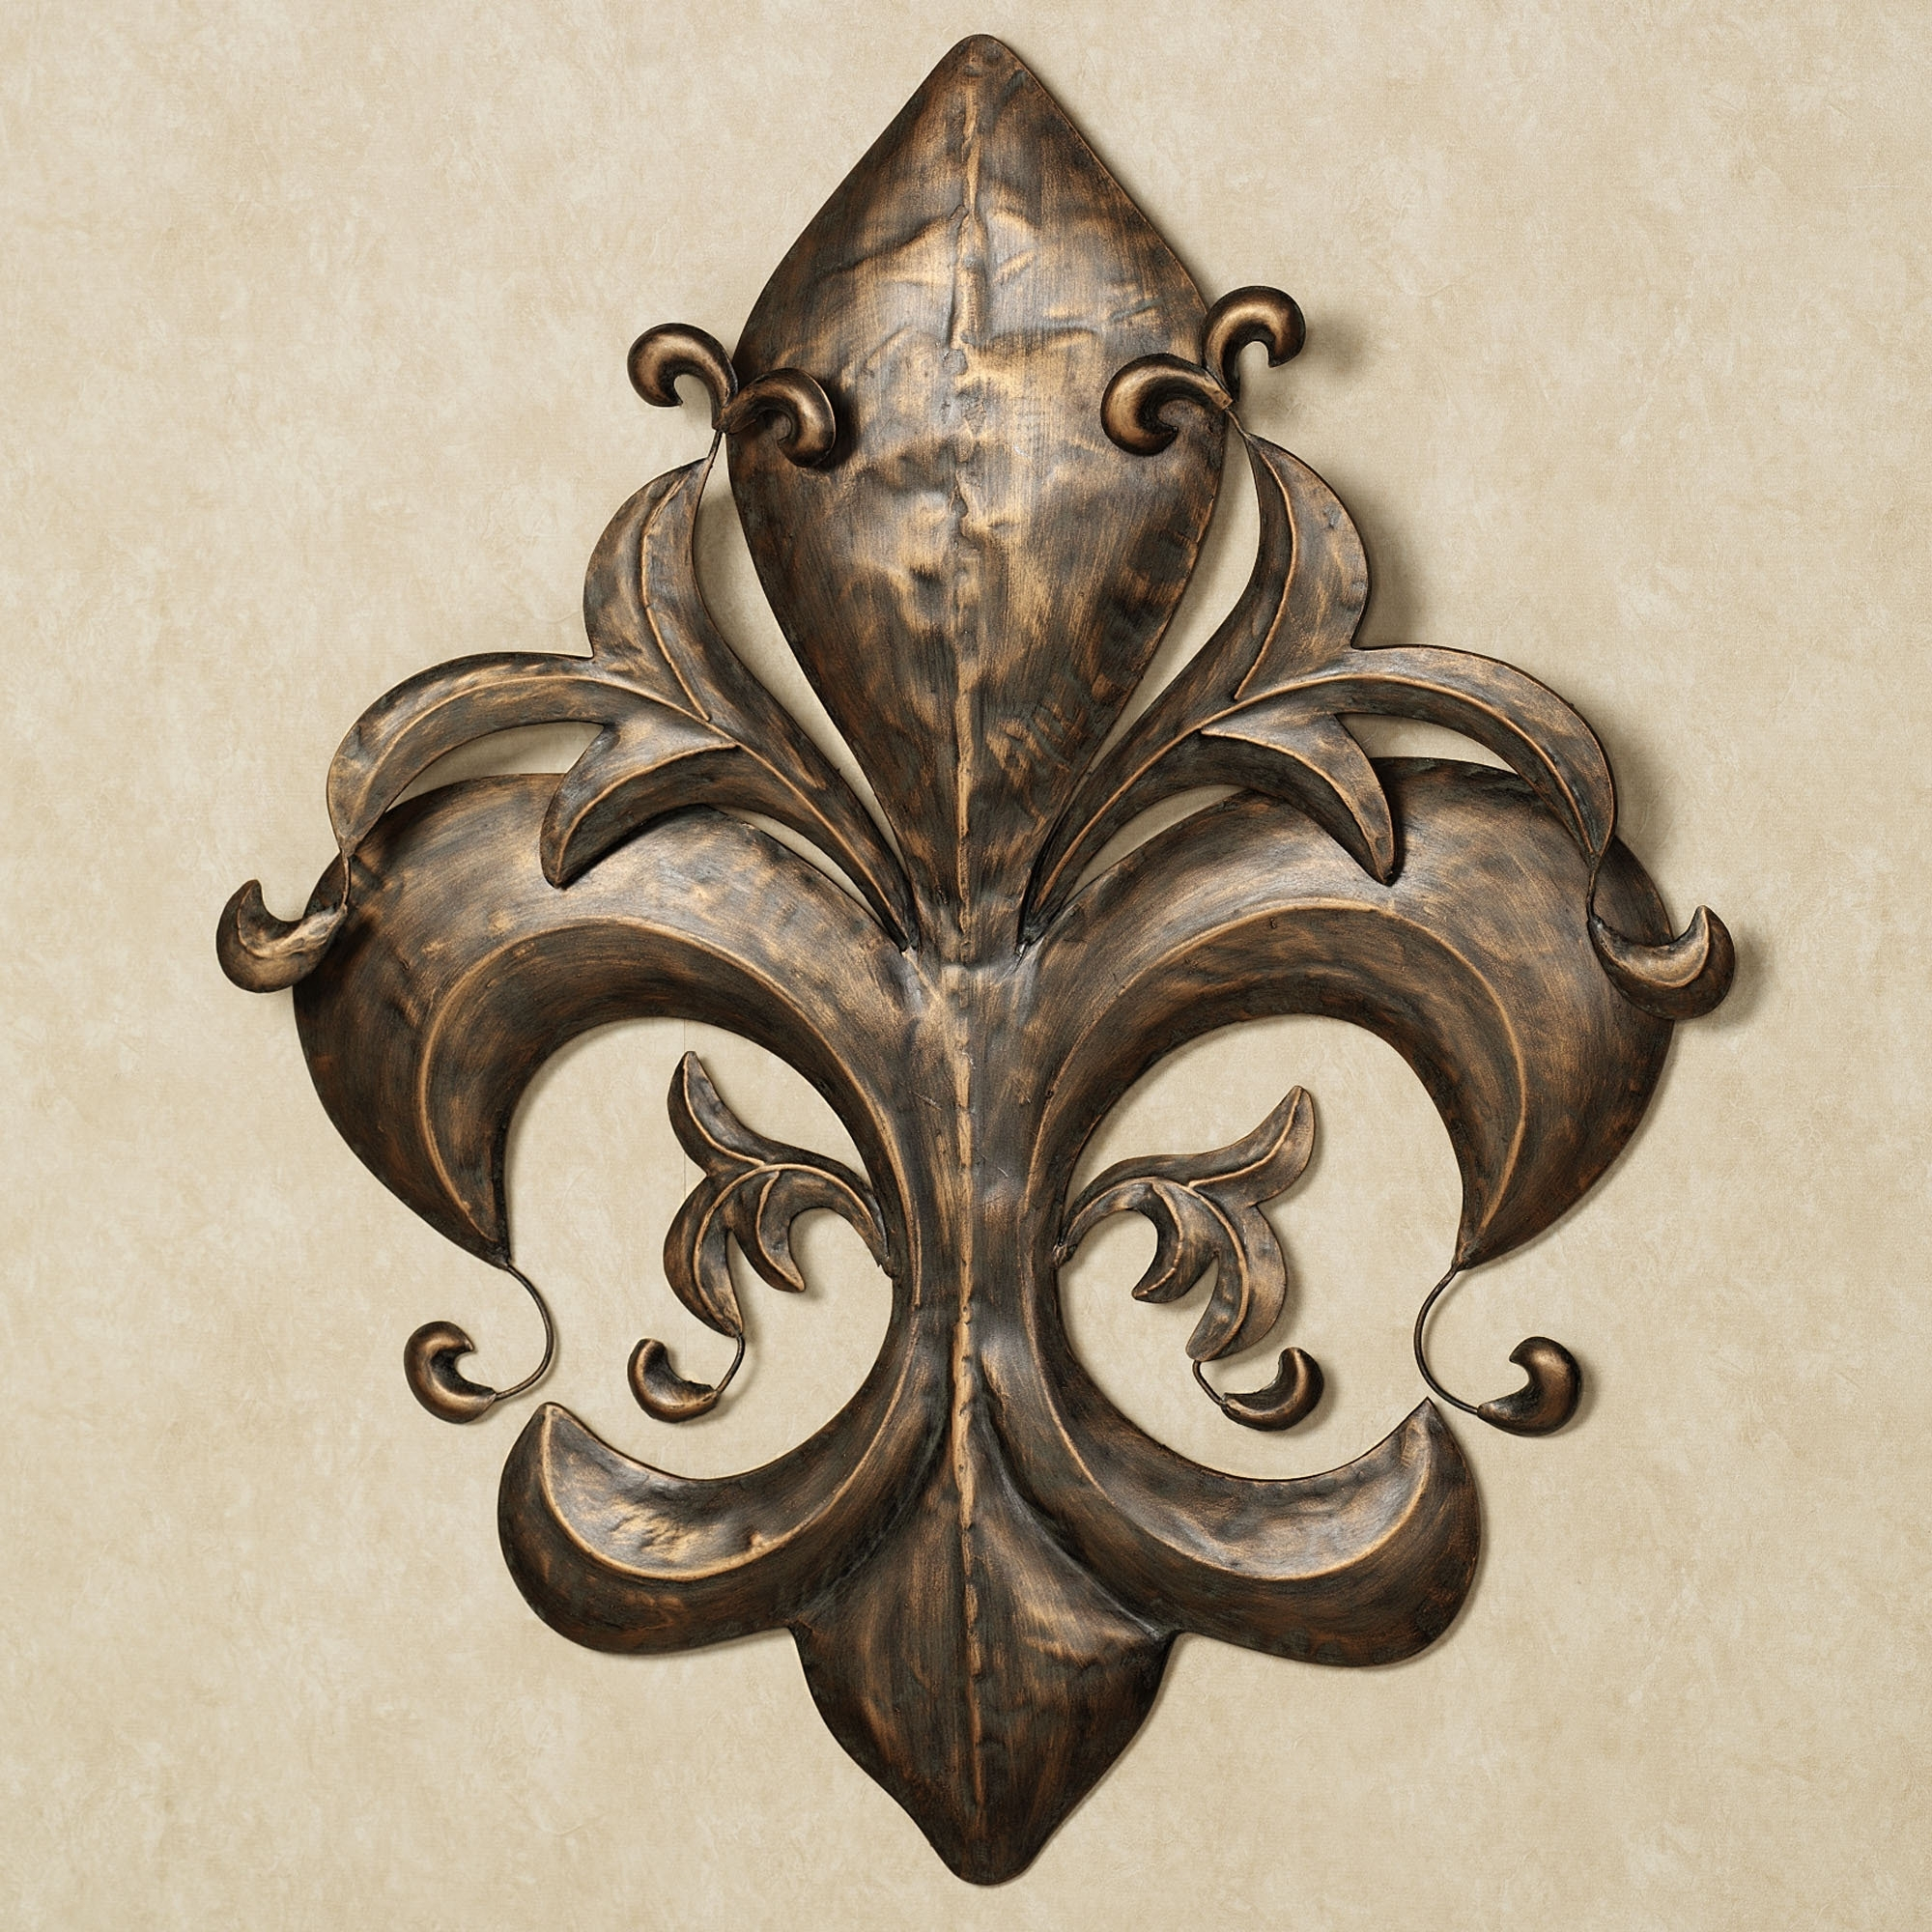 Metal Fleur De Lis Wall Art In Widely Used Projects Ideas Metal Fleur De Lis Wall Decor Design And – Wall (View 6 of 15)